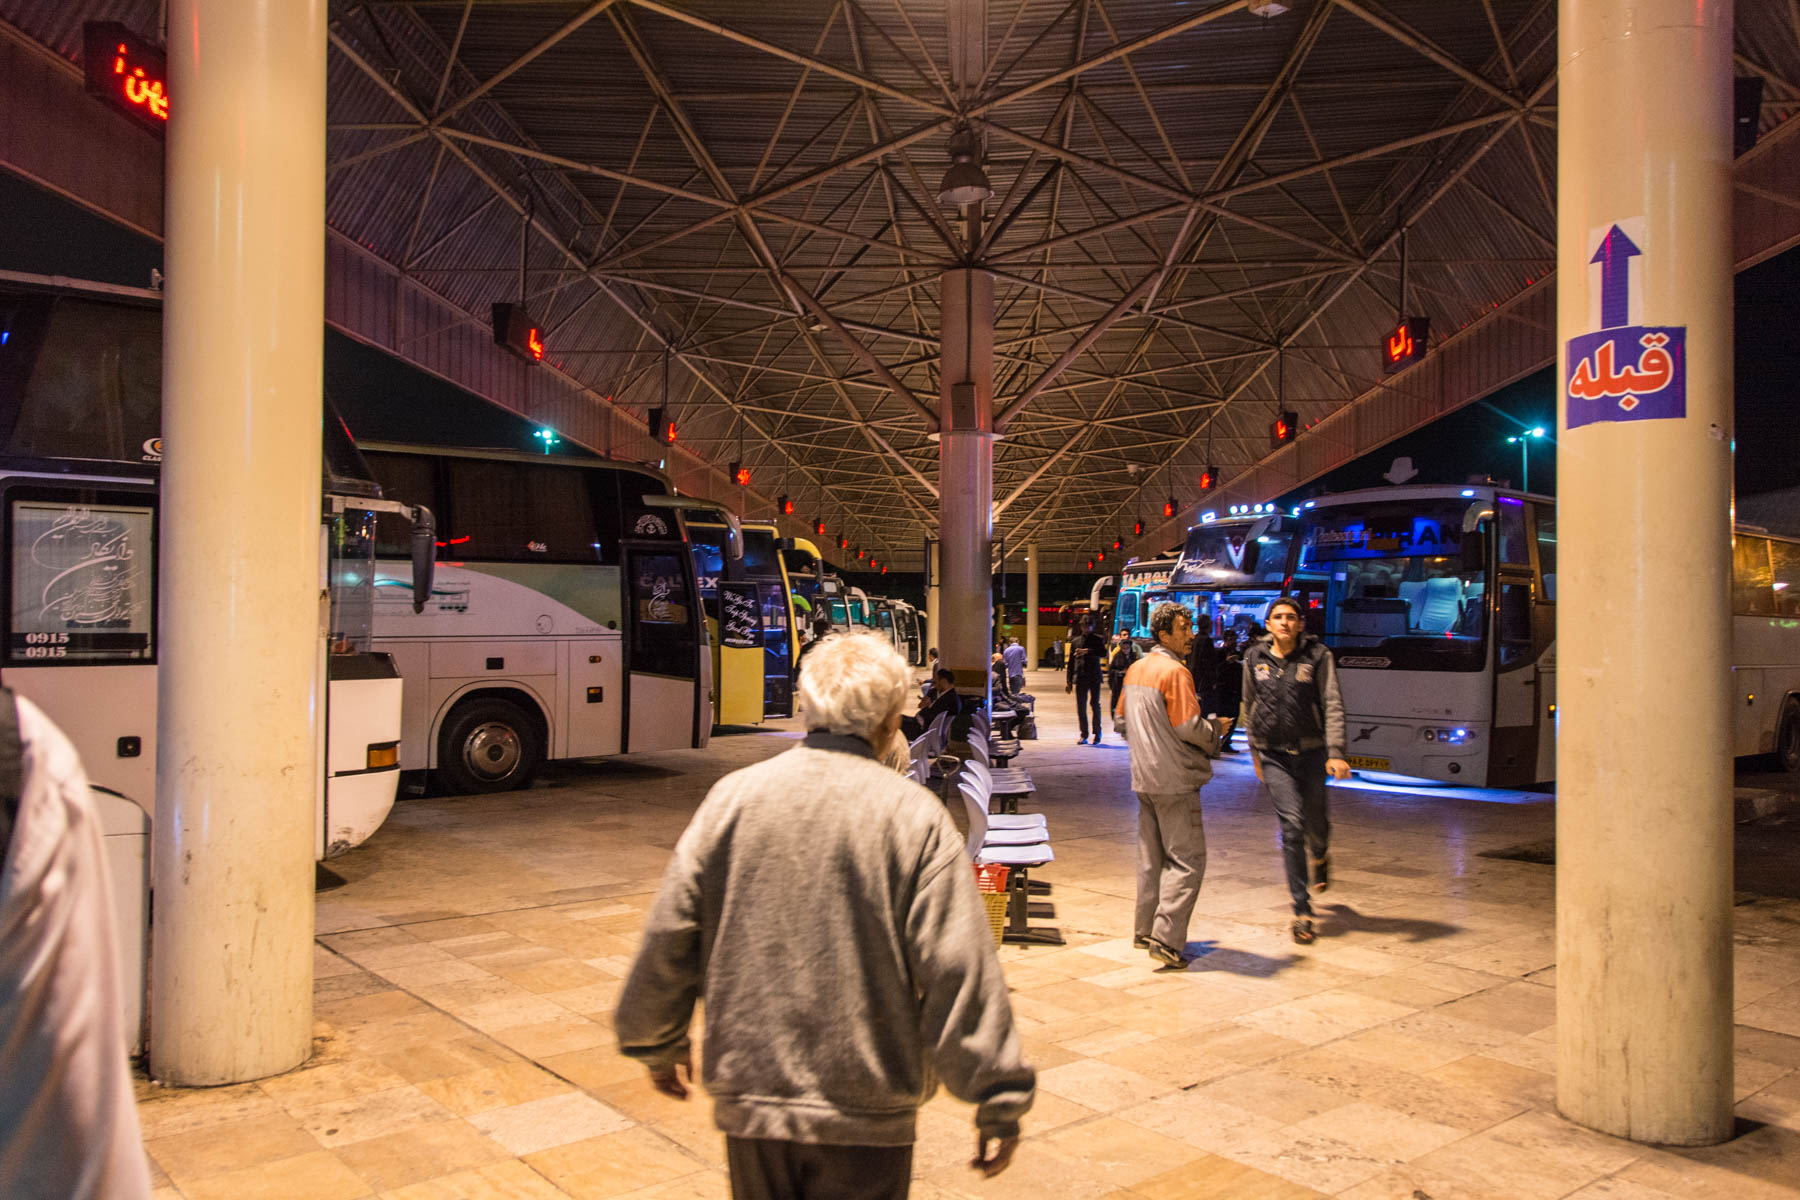 Two week Iran travel itinerary - Bus terminal in Mashhad, Iran - Lost With Purpose